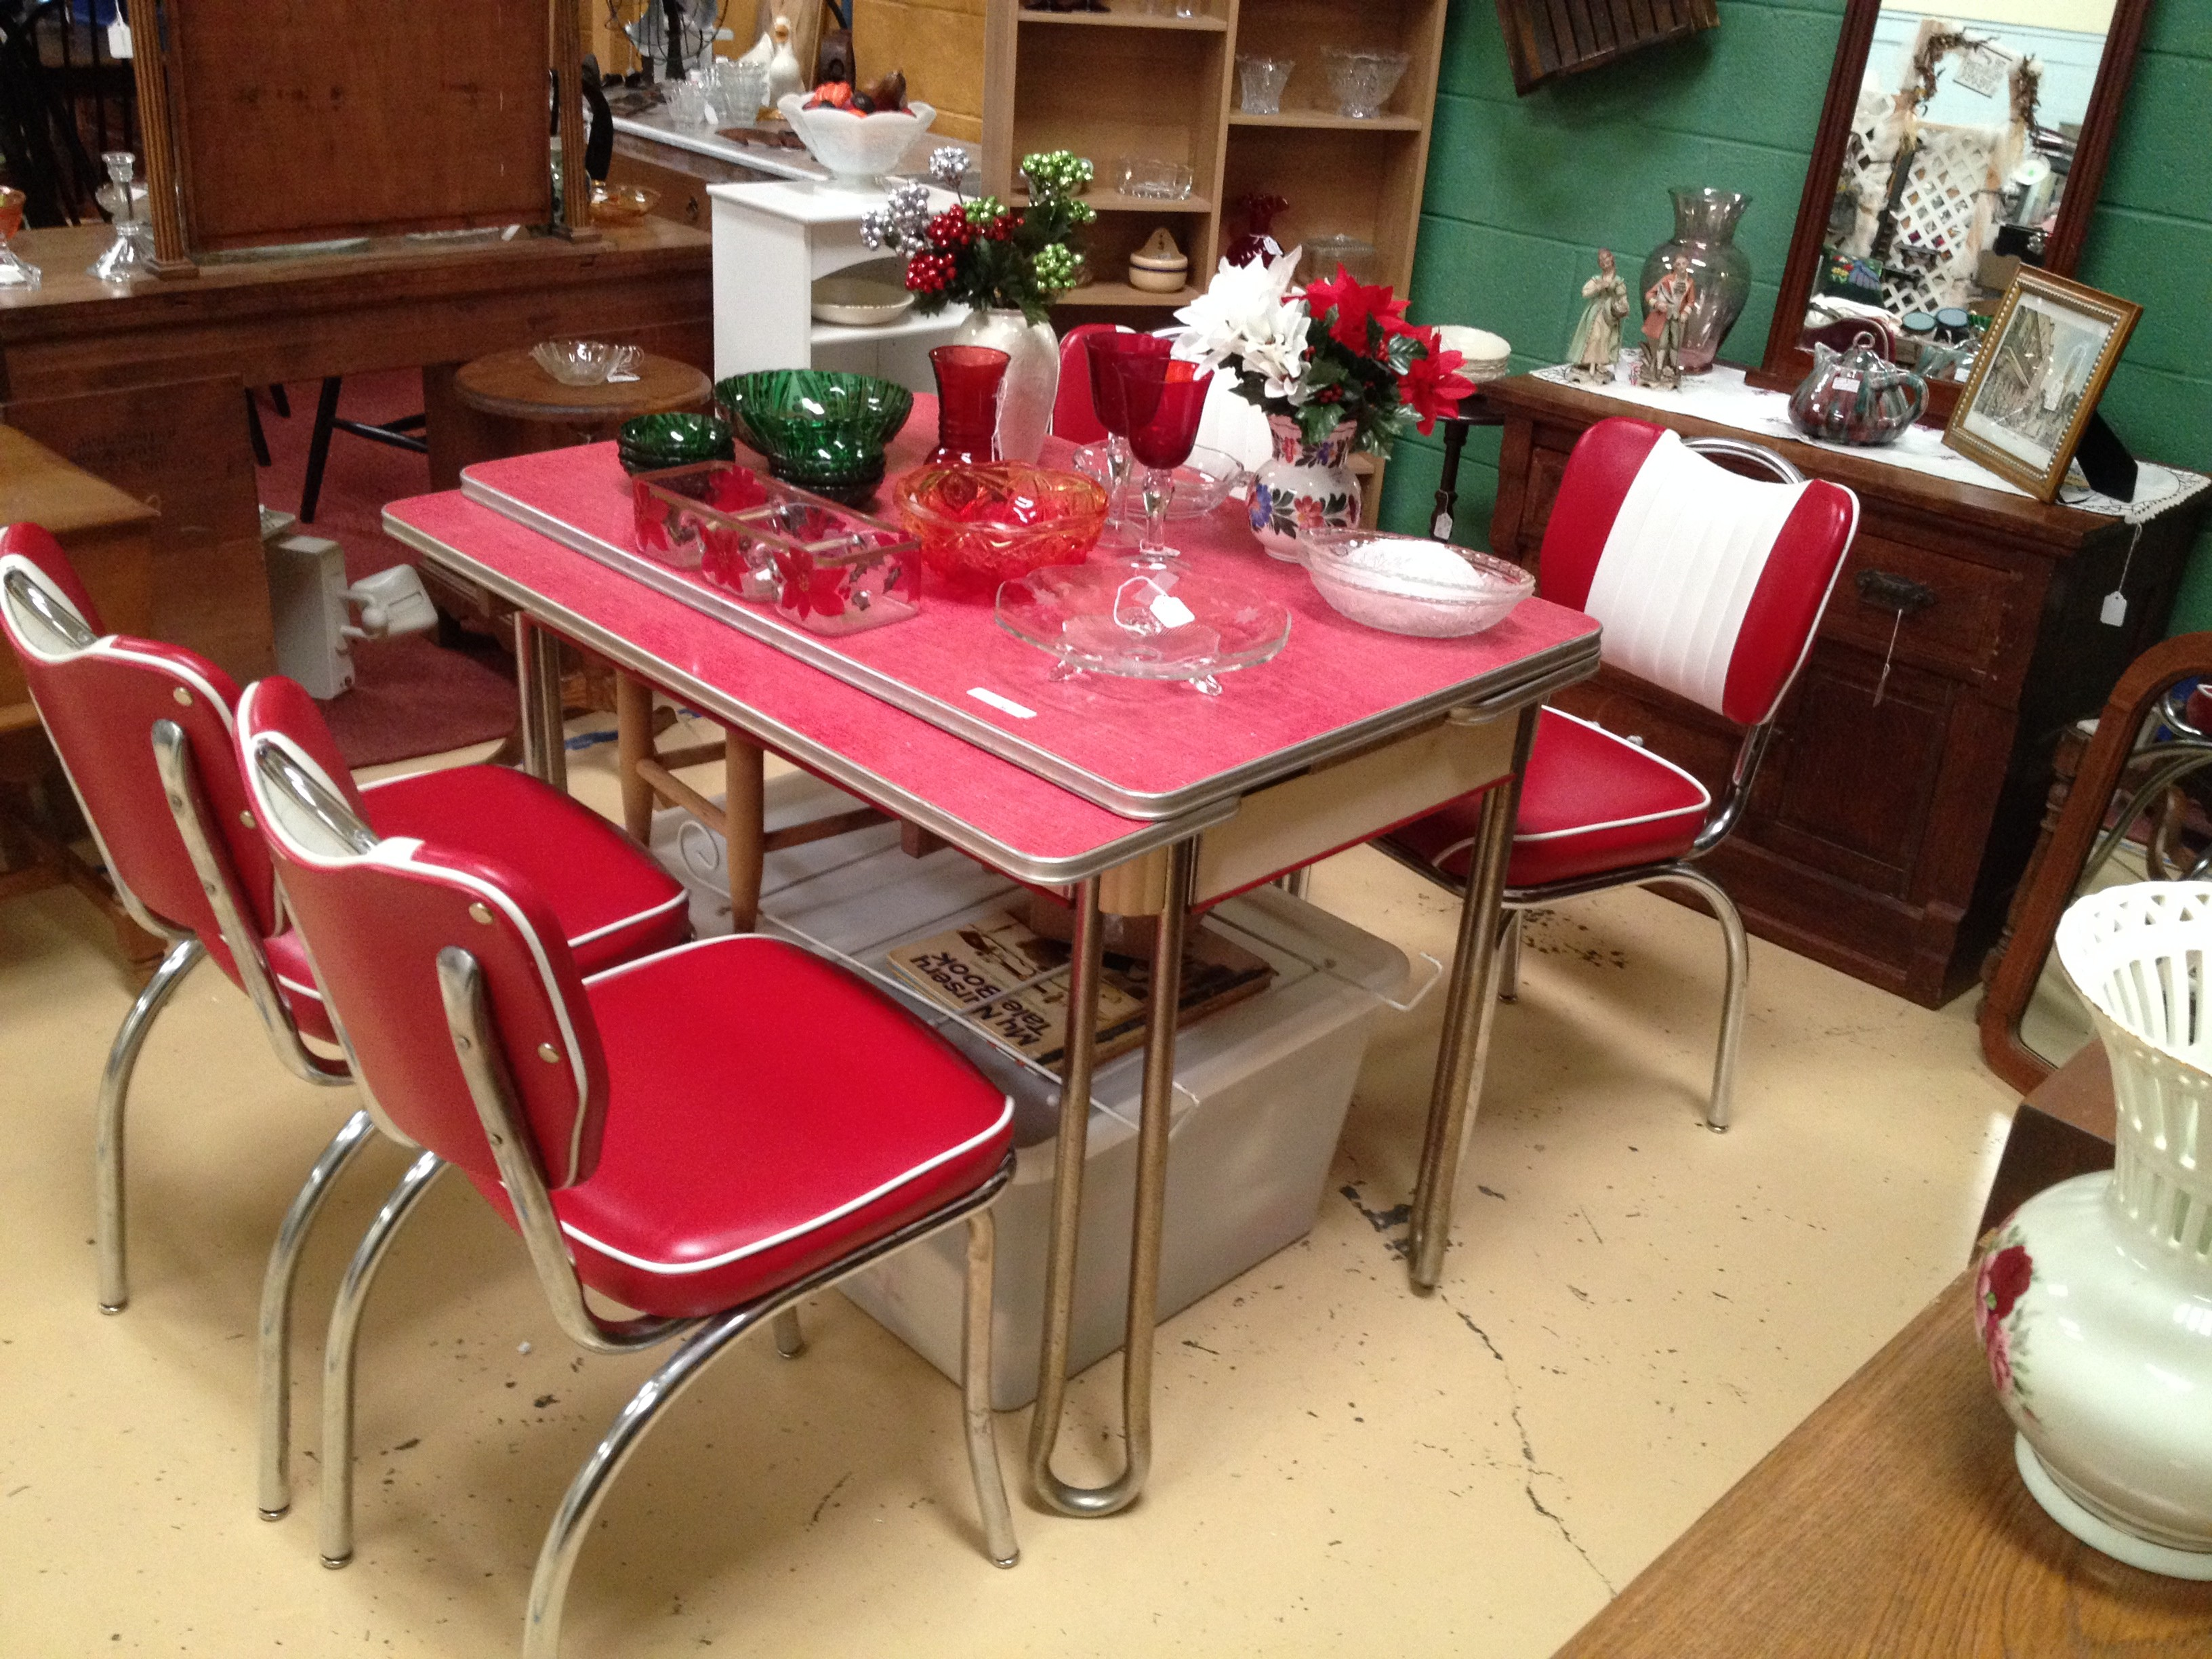 vintage kitchen table and chairs set photo - 6